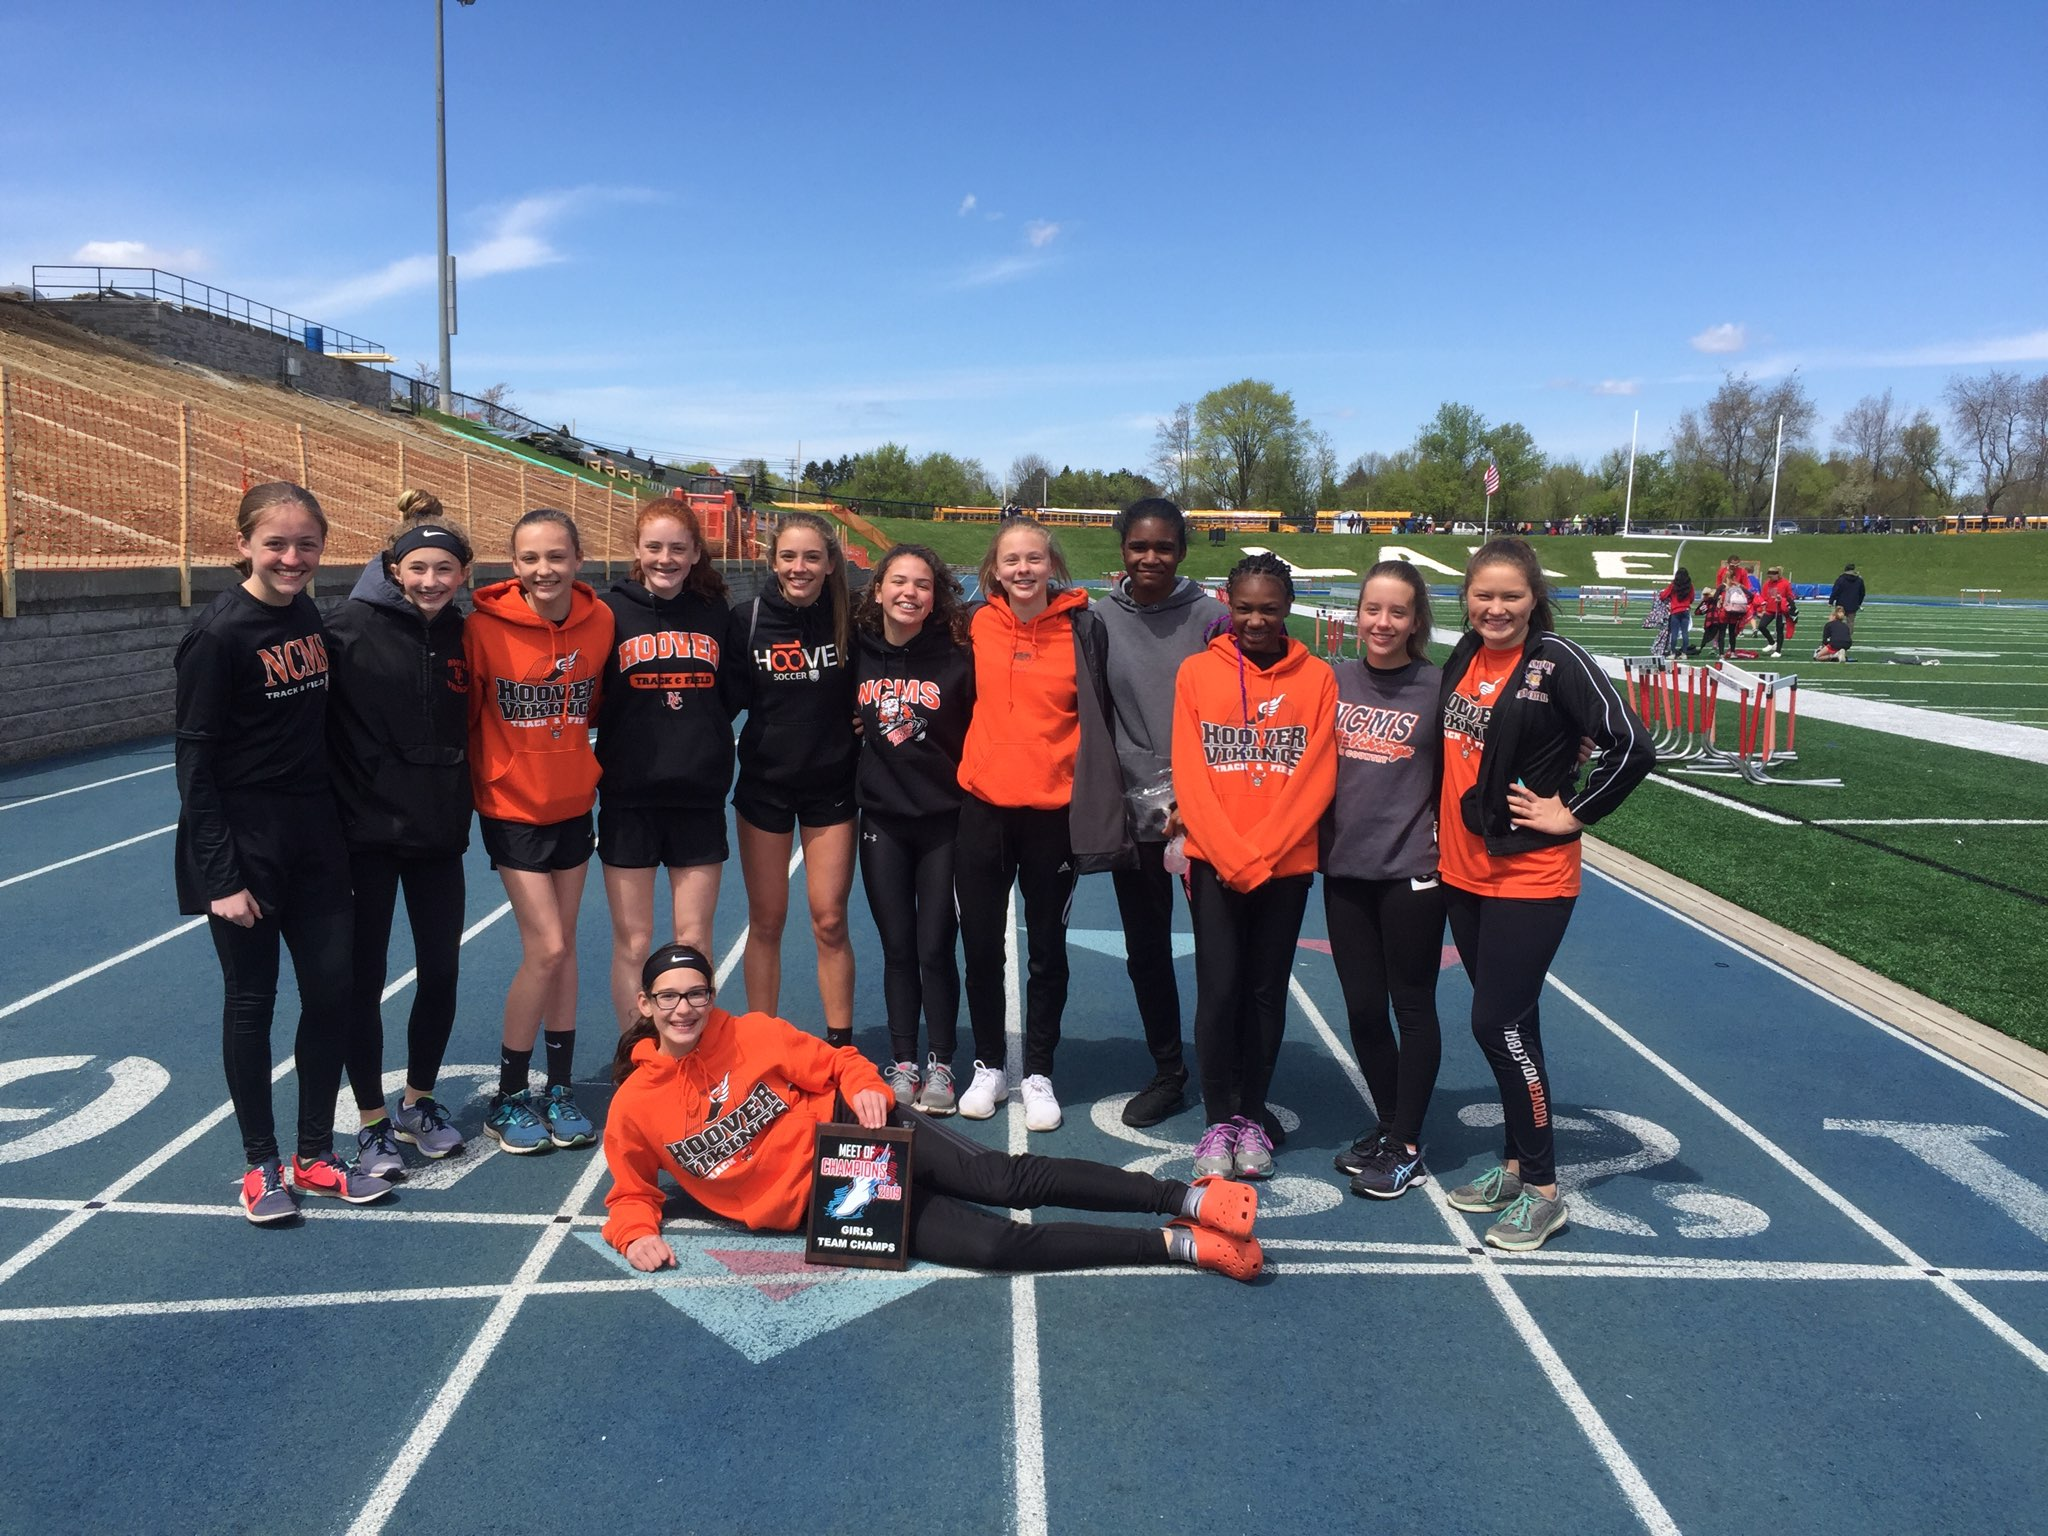 NCMS Girl's Took First Place at the Lake Meet of Champions